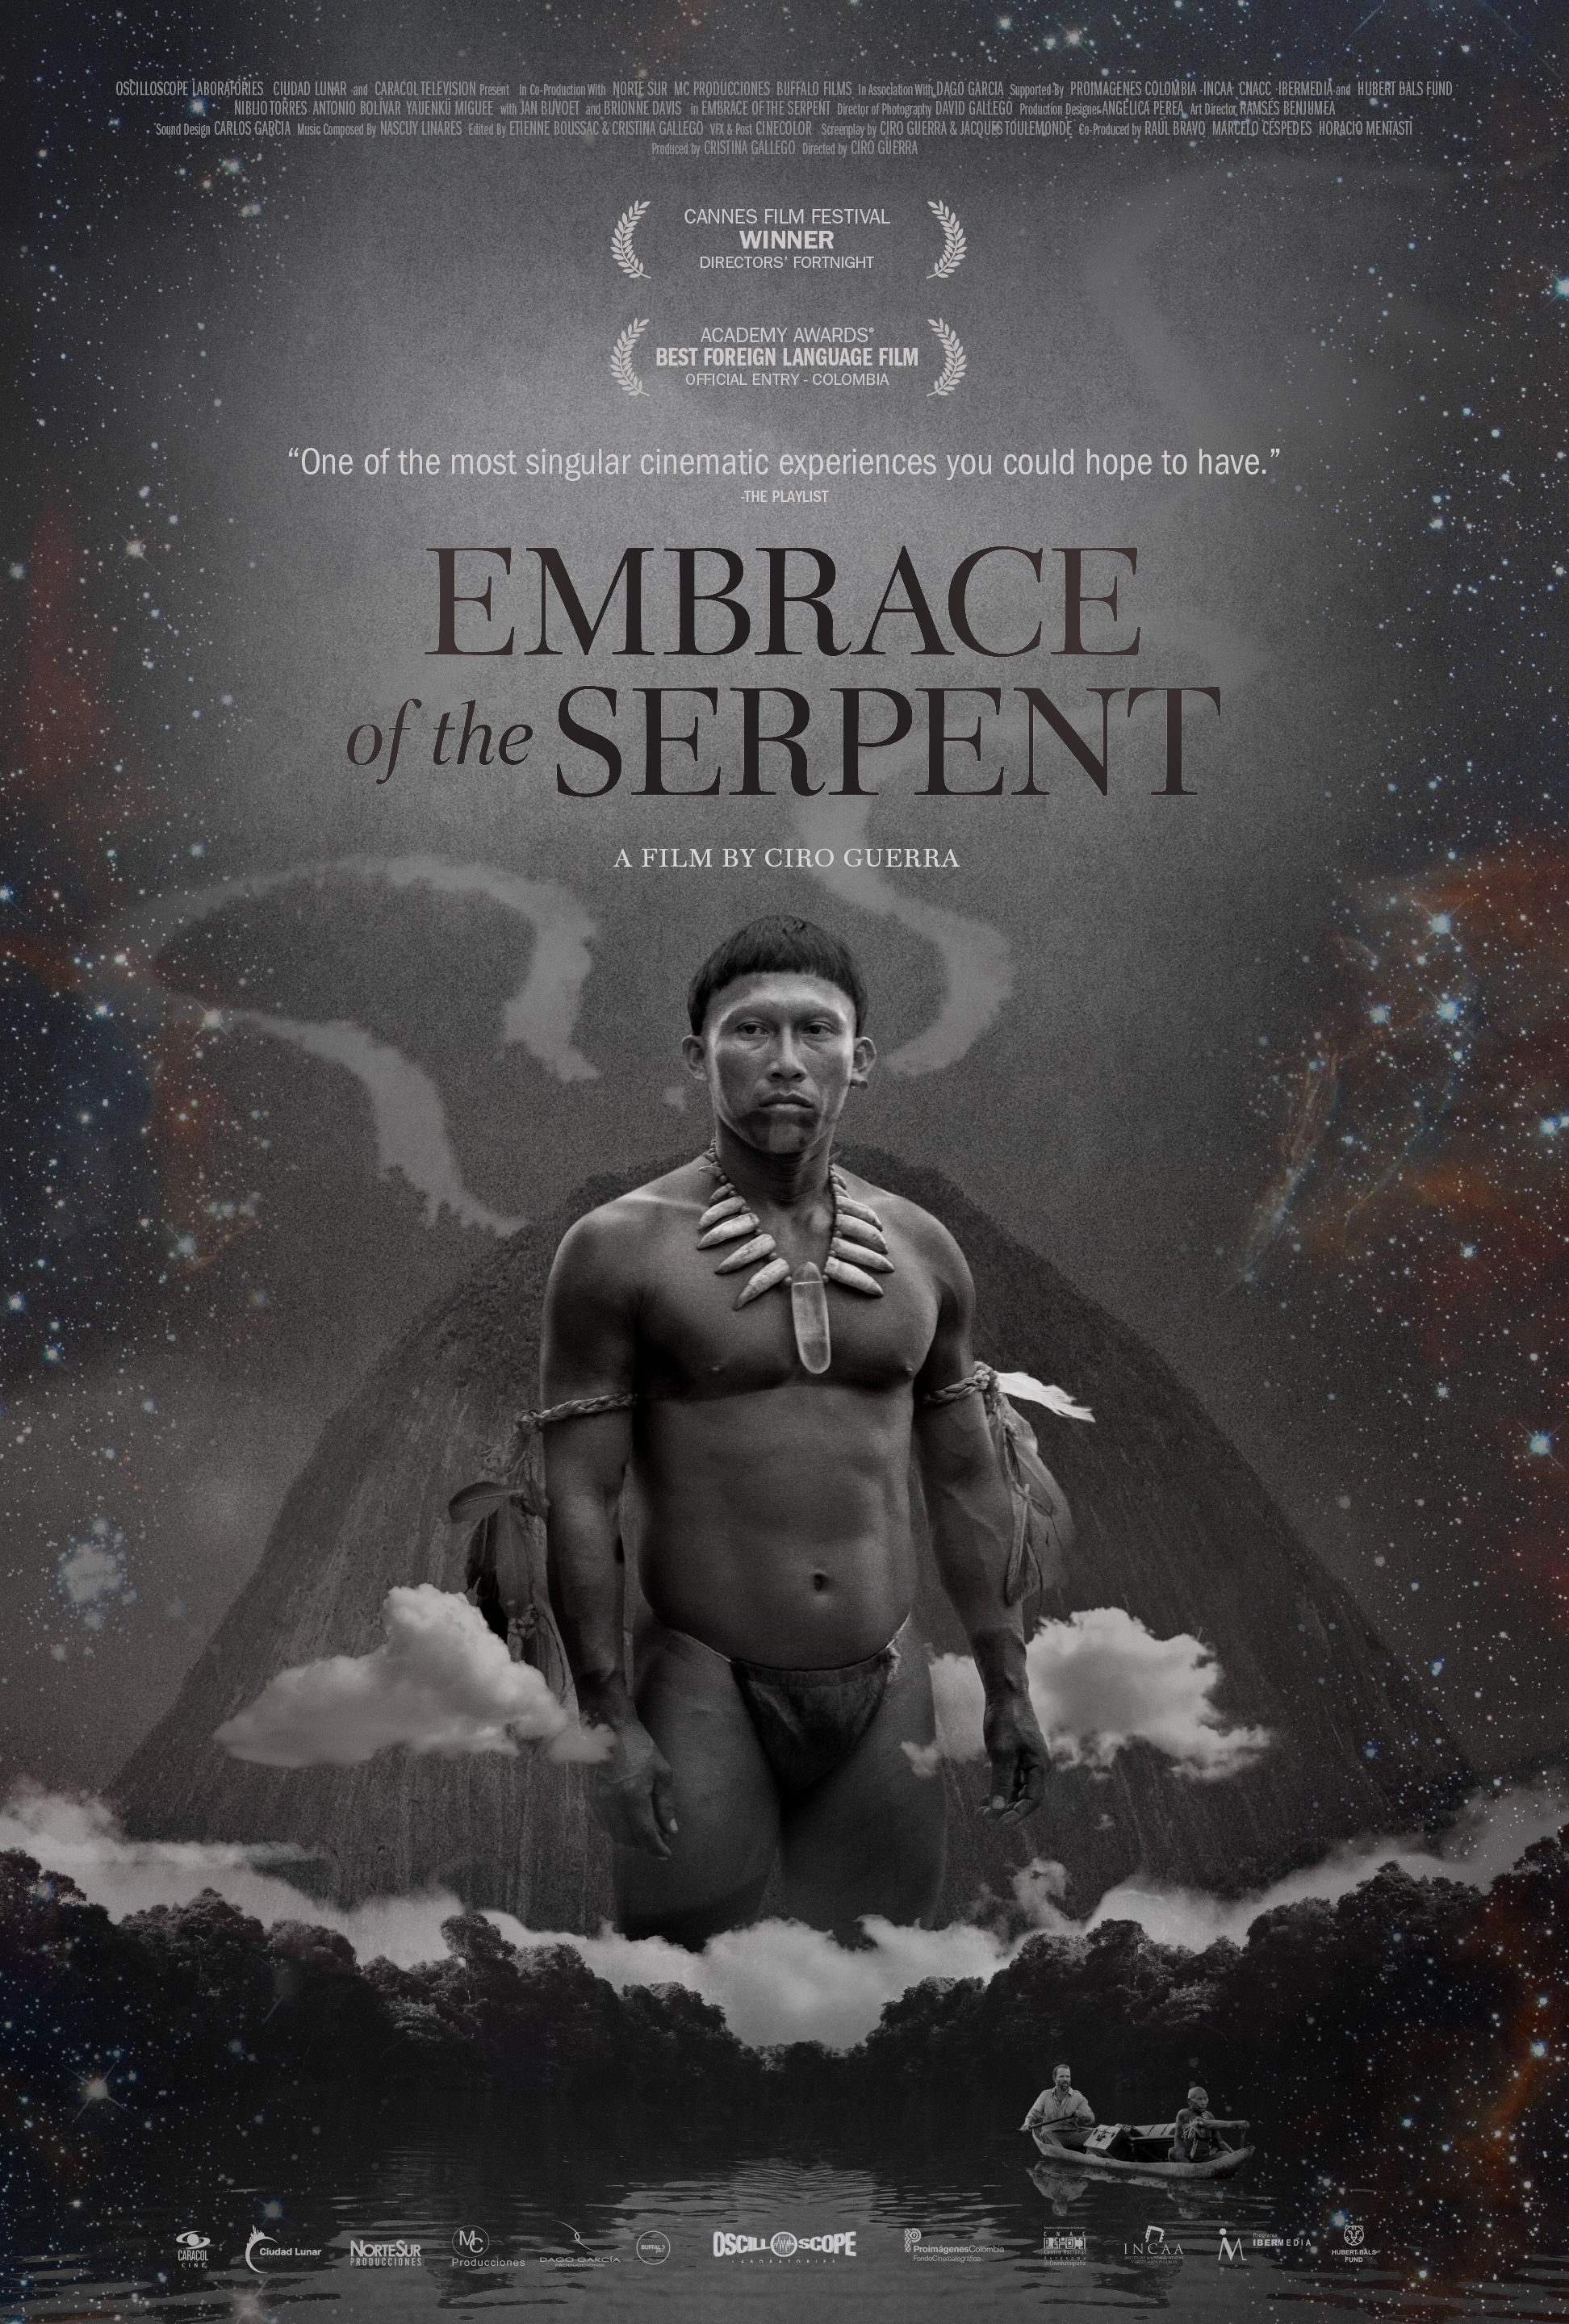 embrace-of-the-serpent-poster.jpg